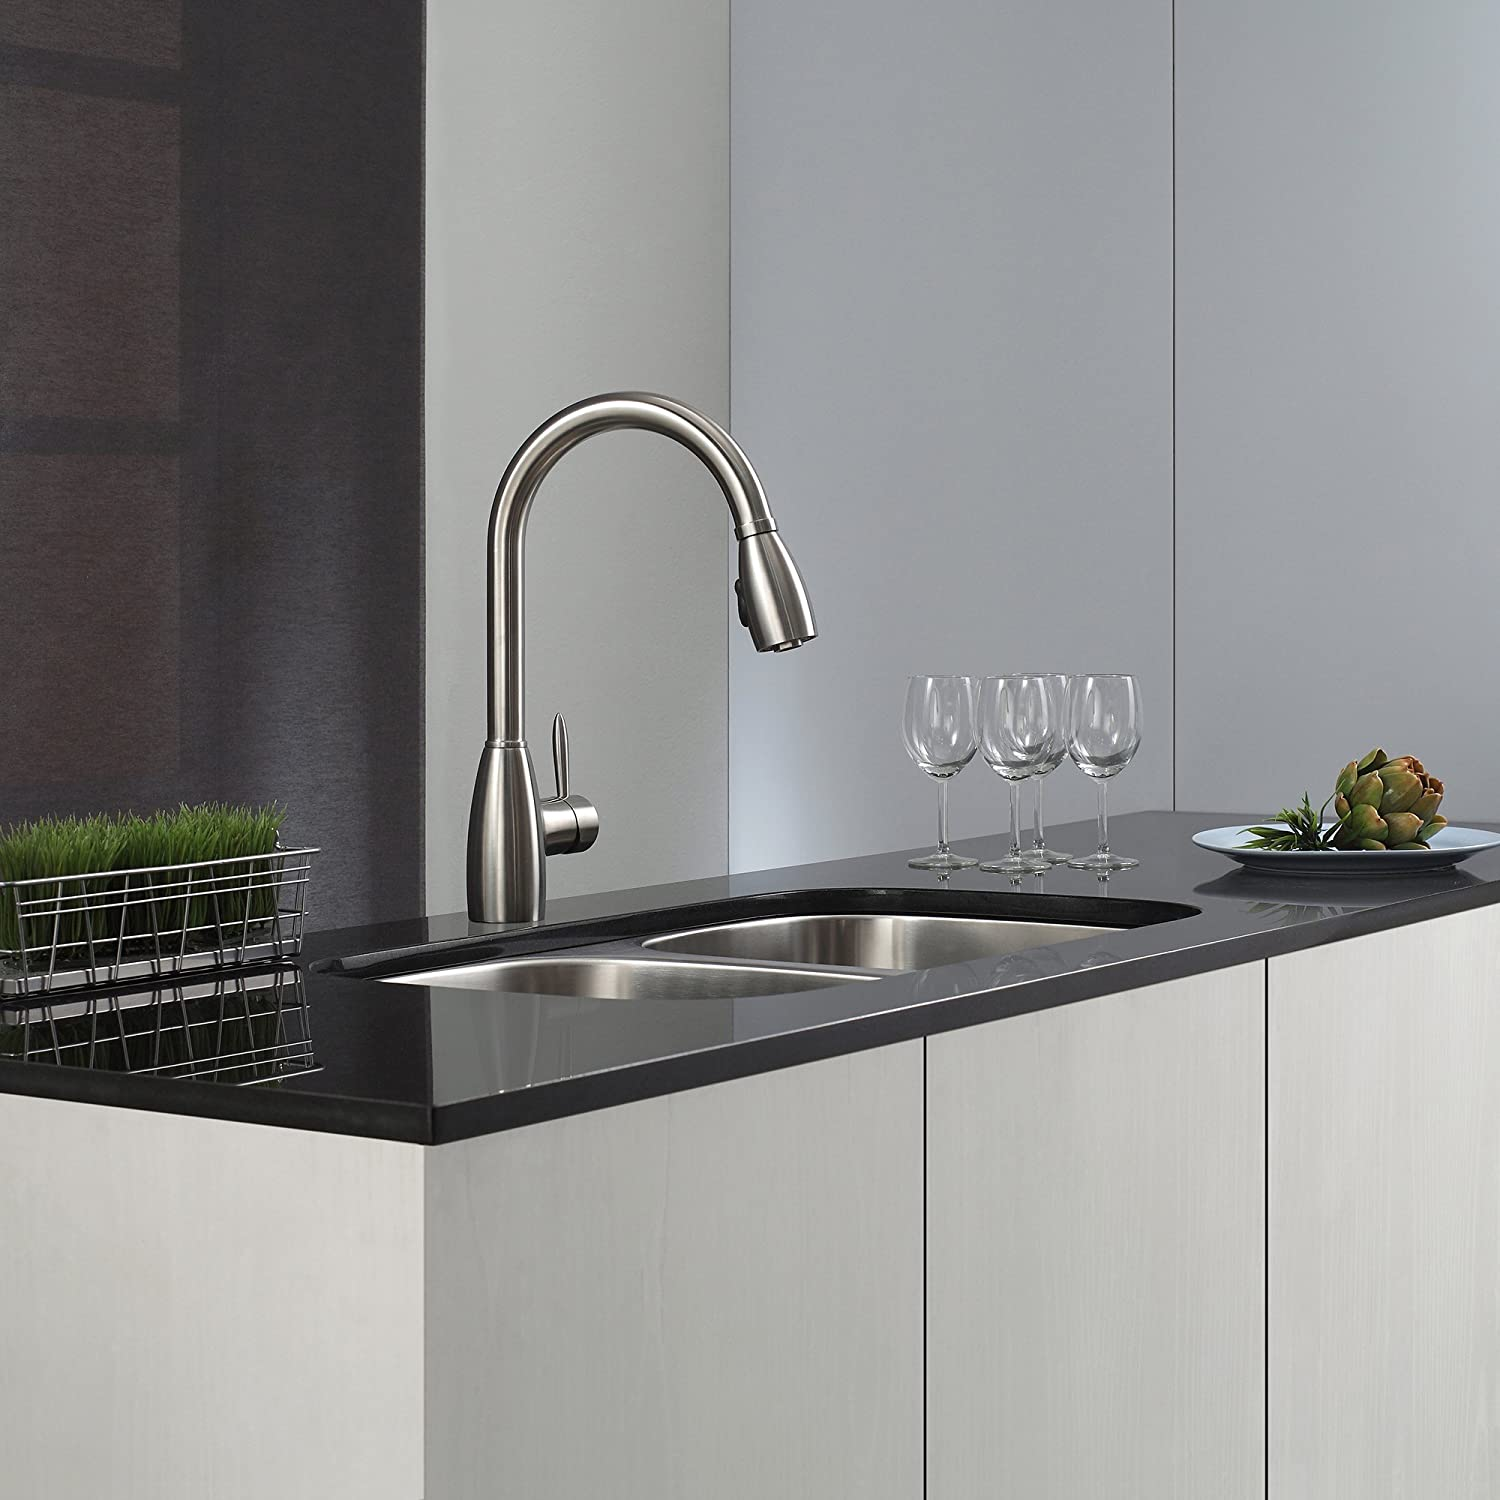 drainer removable zeroz soap kitchen brushed pin sink steel with blanco including dispenser s faucet tap alno finish and matching in culina mini a wave